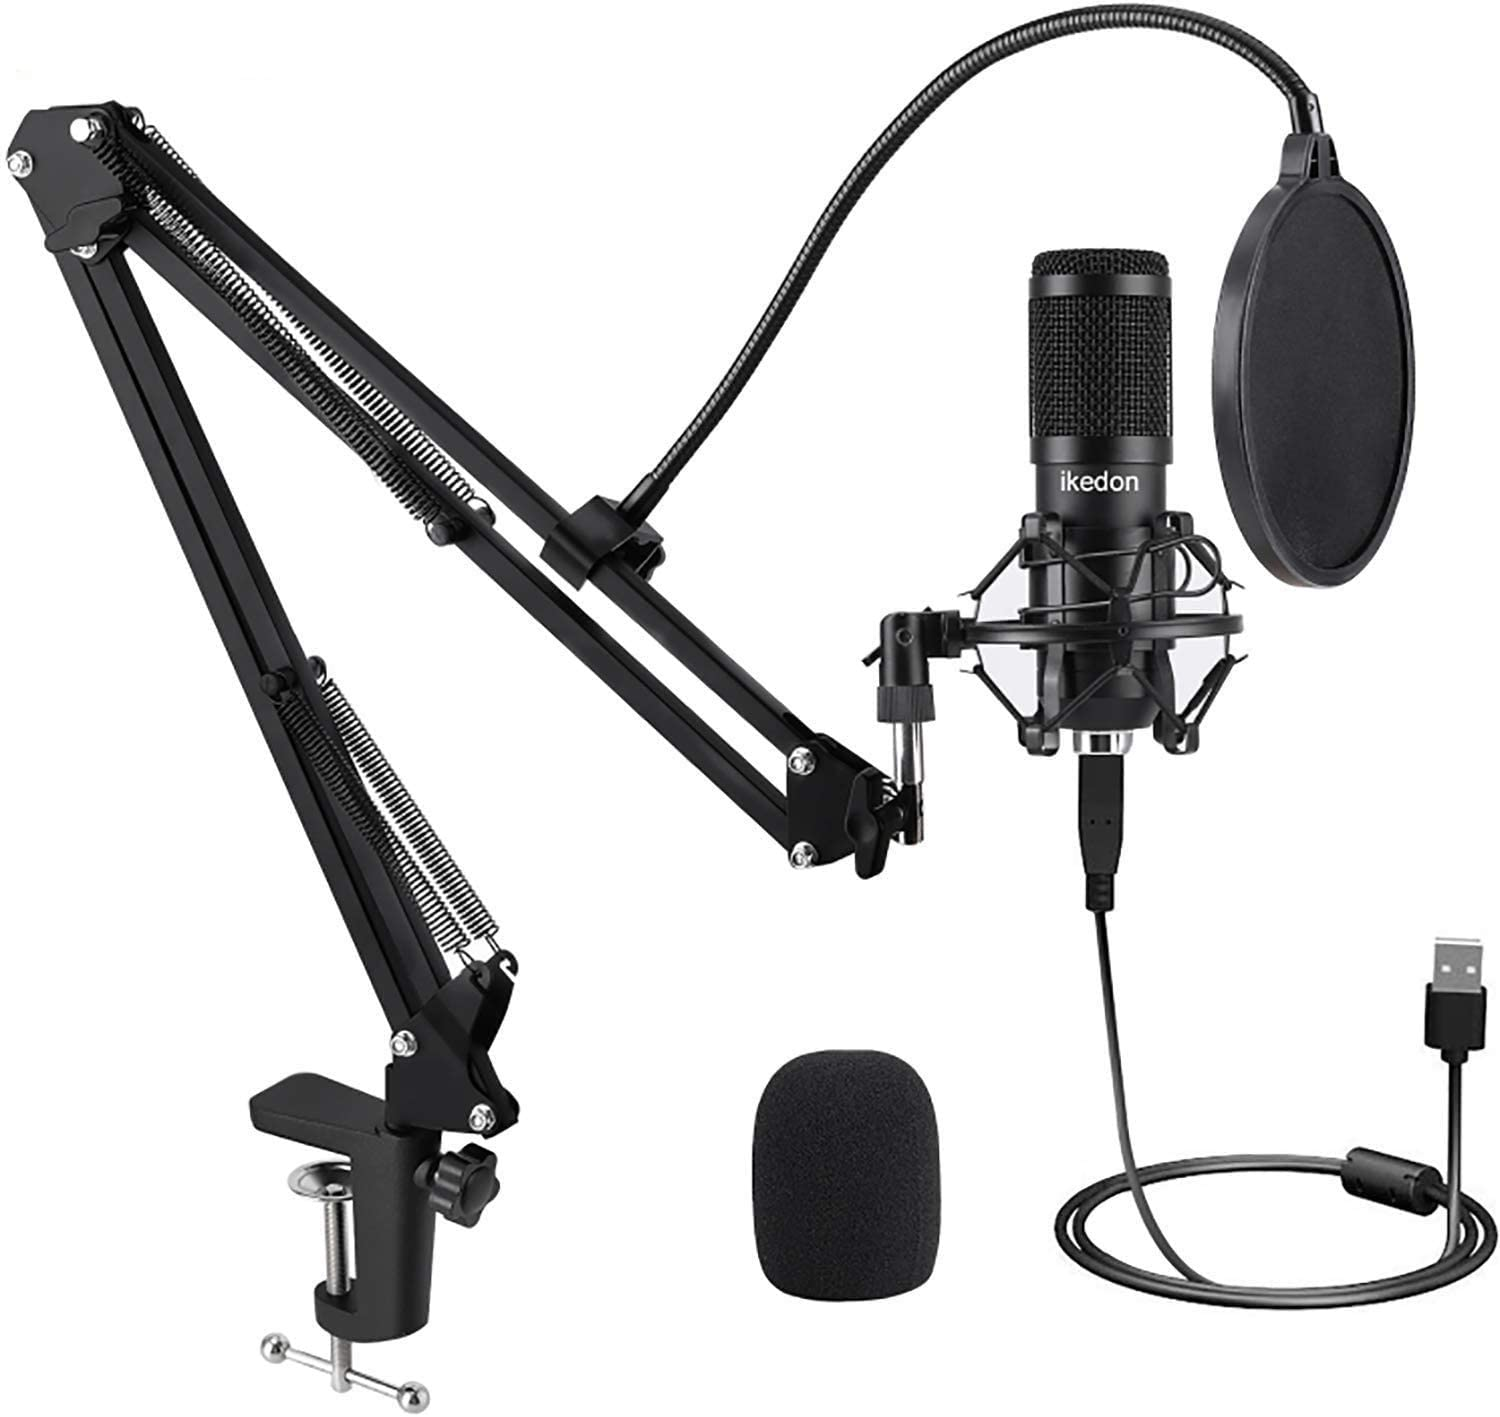 USB Condenser Microphone 192KHZ//24BIT USB Microphone Kit Podcast Microphone USB Computer Studio Cardioid Condenser Mic Kit with Professional Sound Chipset for Recording Broadcasting YouTube Gaming